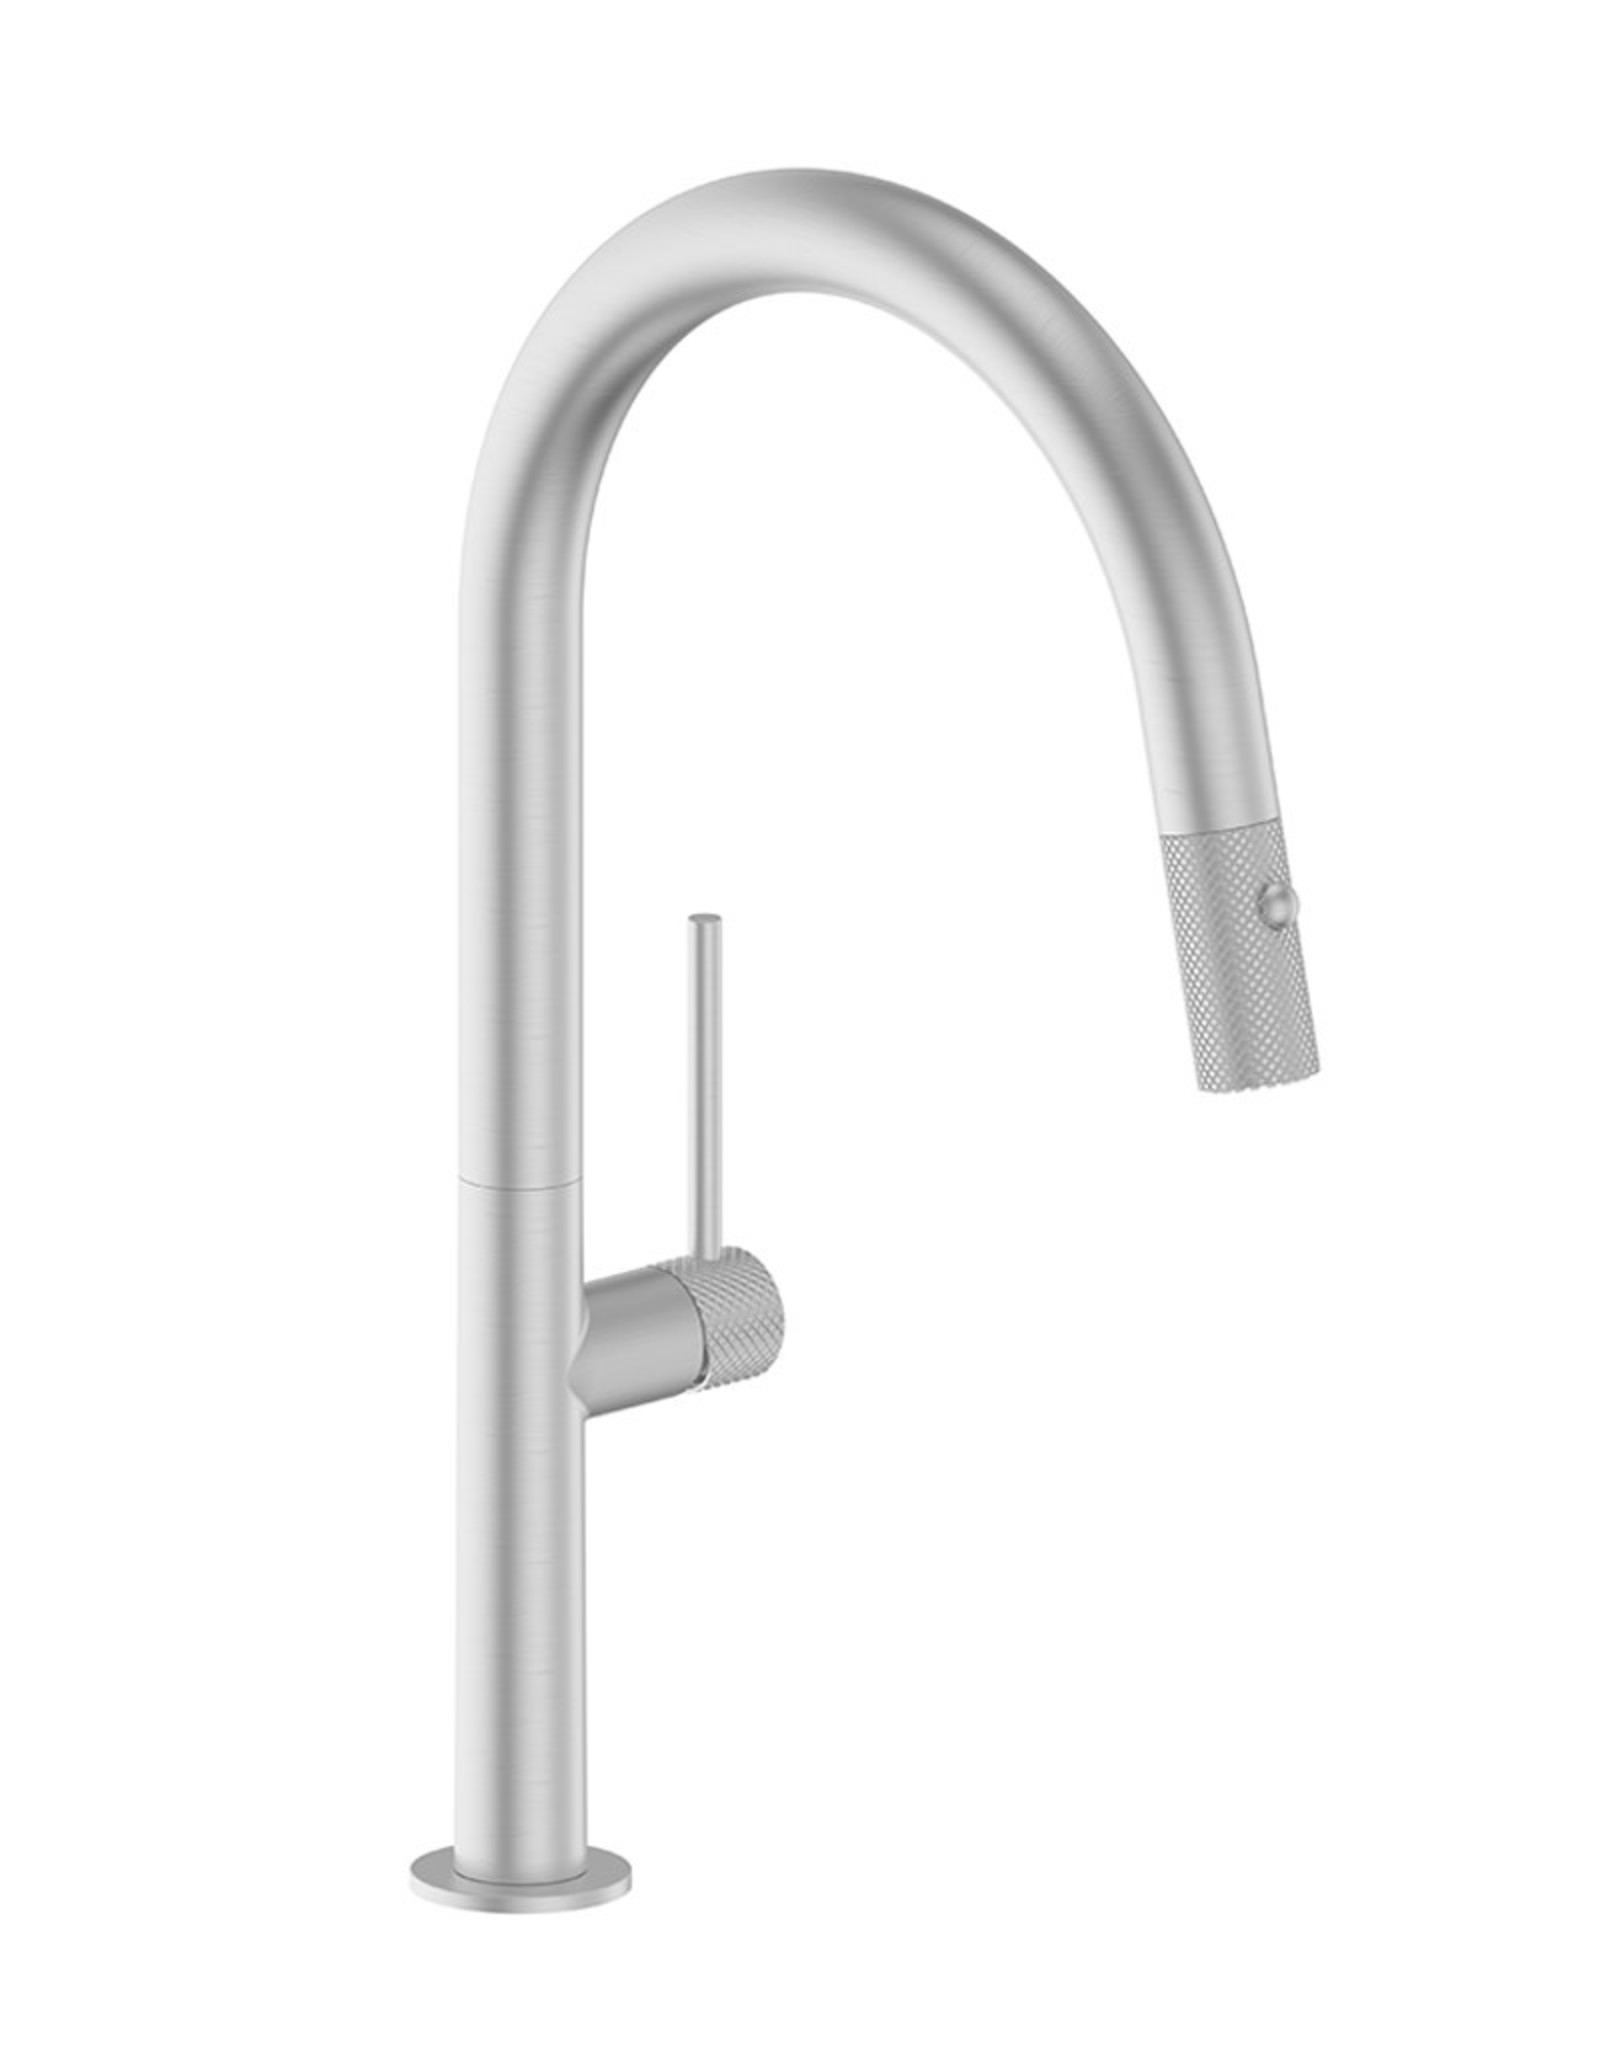 Vogt VOGT DRAVA- KITCHEN FAUCET WITH 2-FUNCTION PULL-DOWN SPRAY